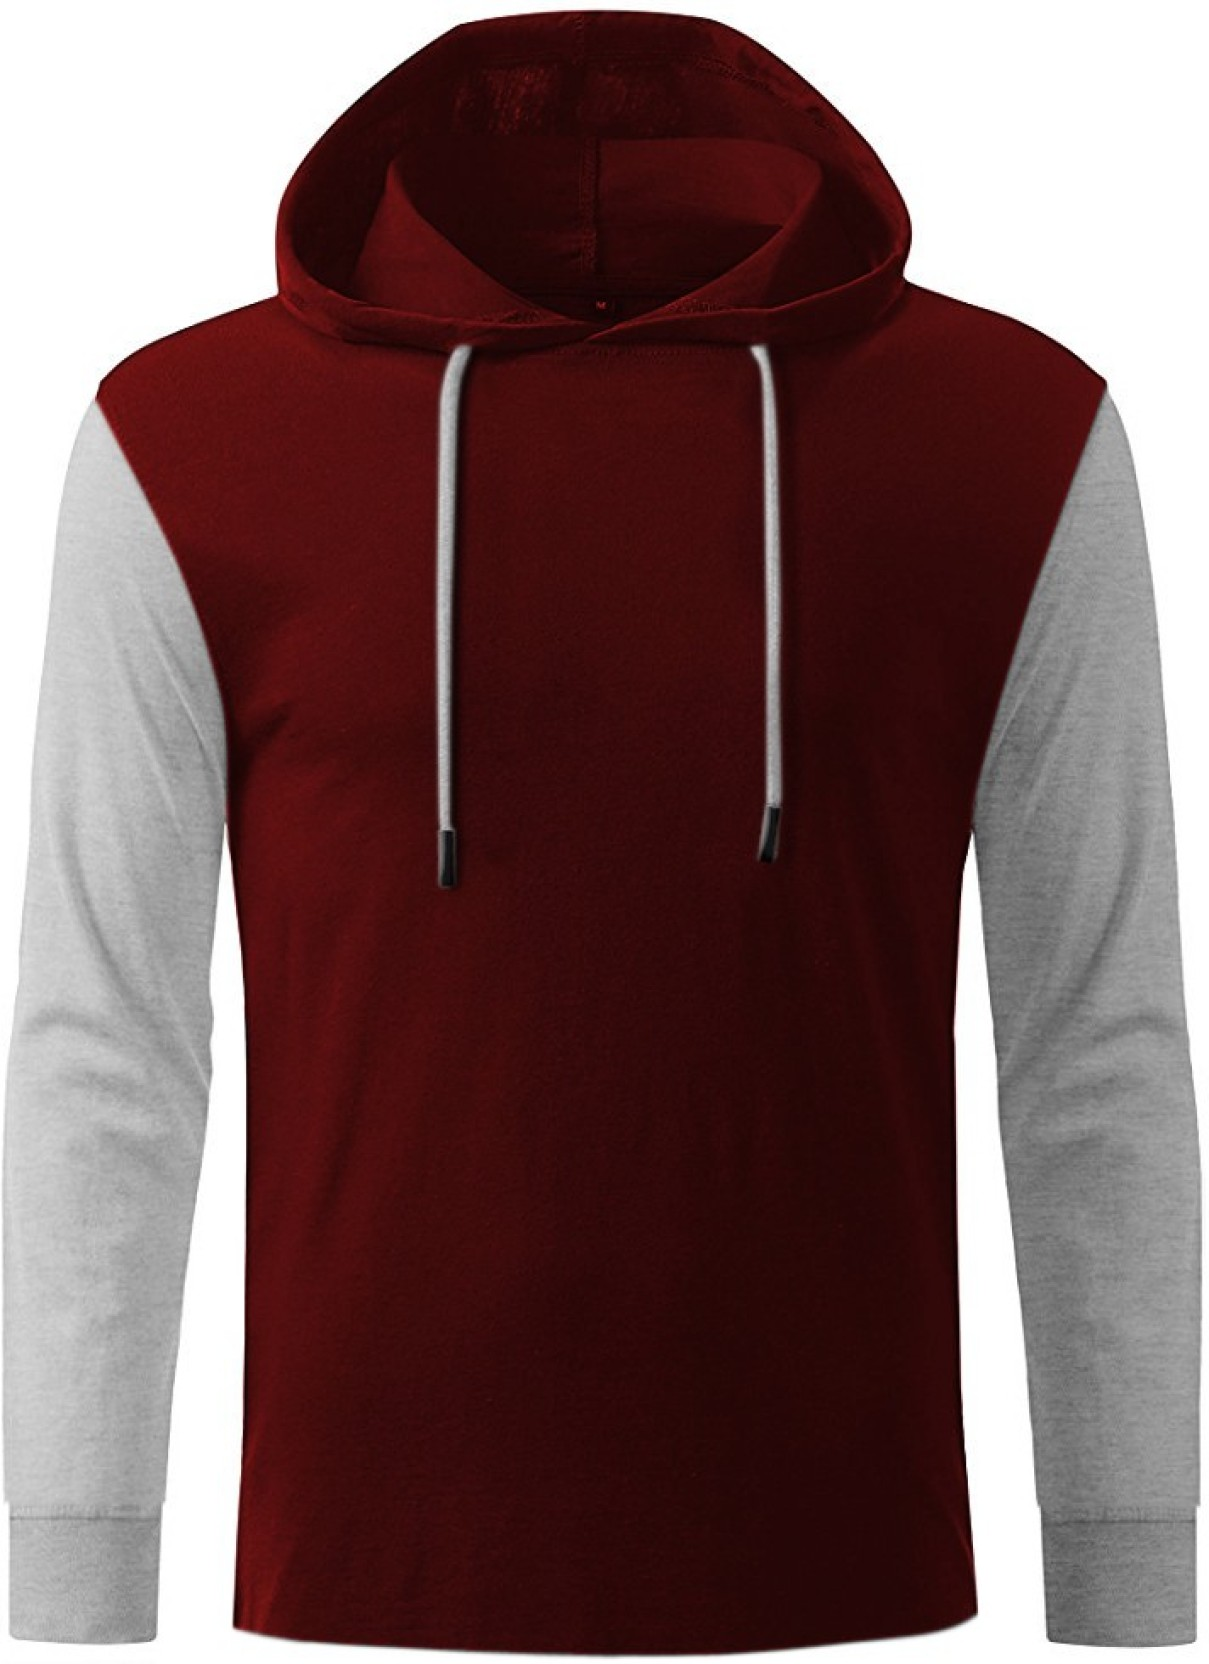 Ghpc solid men 39 s hooded maroon t shirt buy maroon ghpc for Best place to buy t shirts online